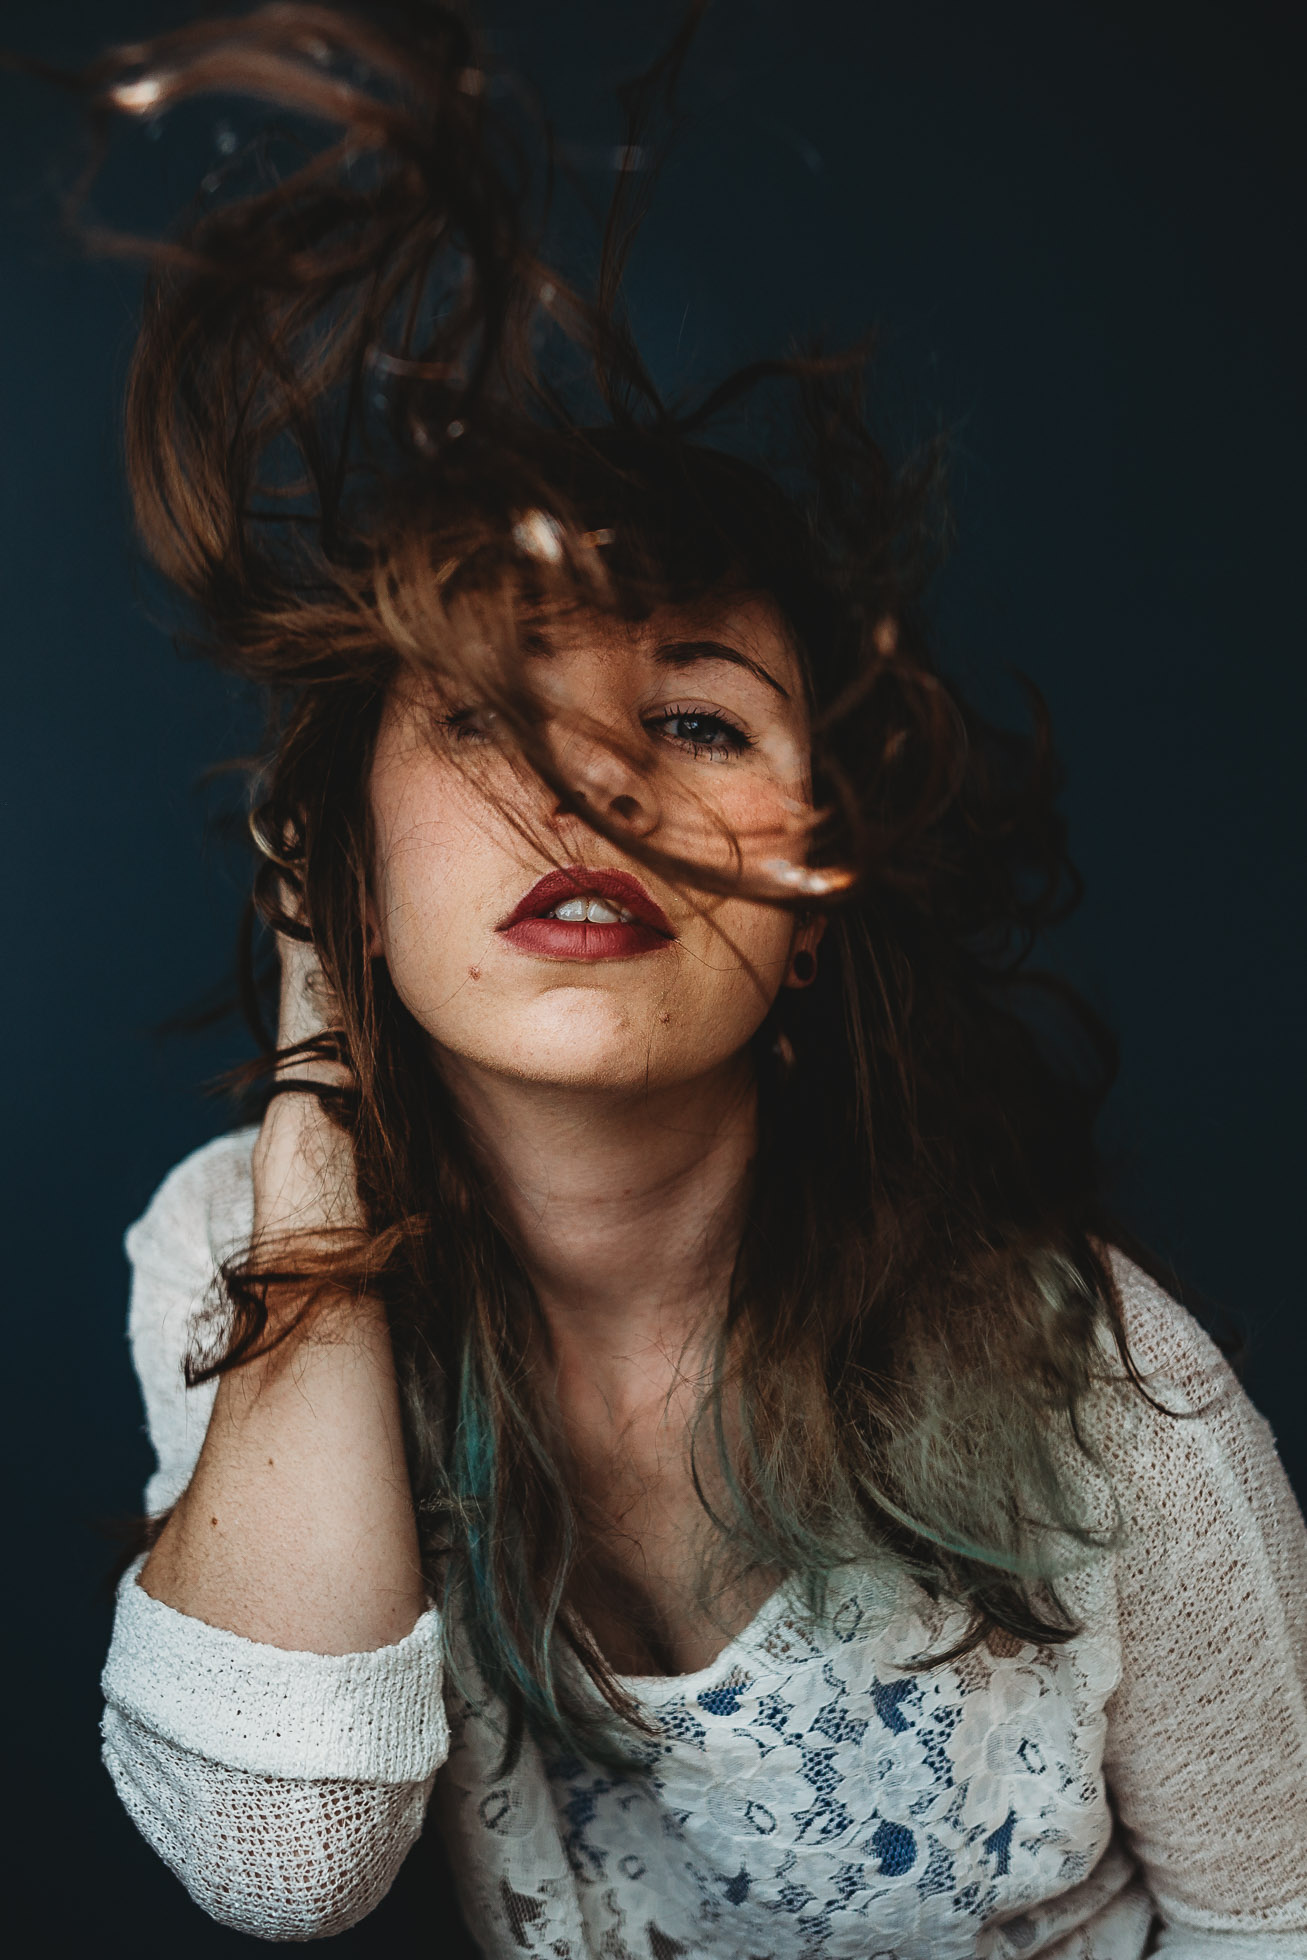 Self-Portrait-Of-A-Woman-Against-A-Blue-Background-With-Hairflip-2